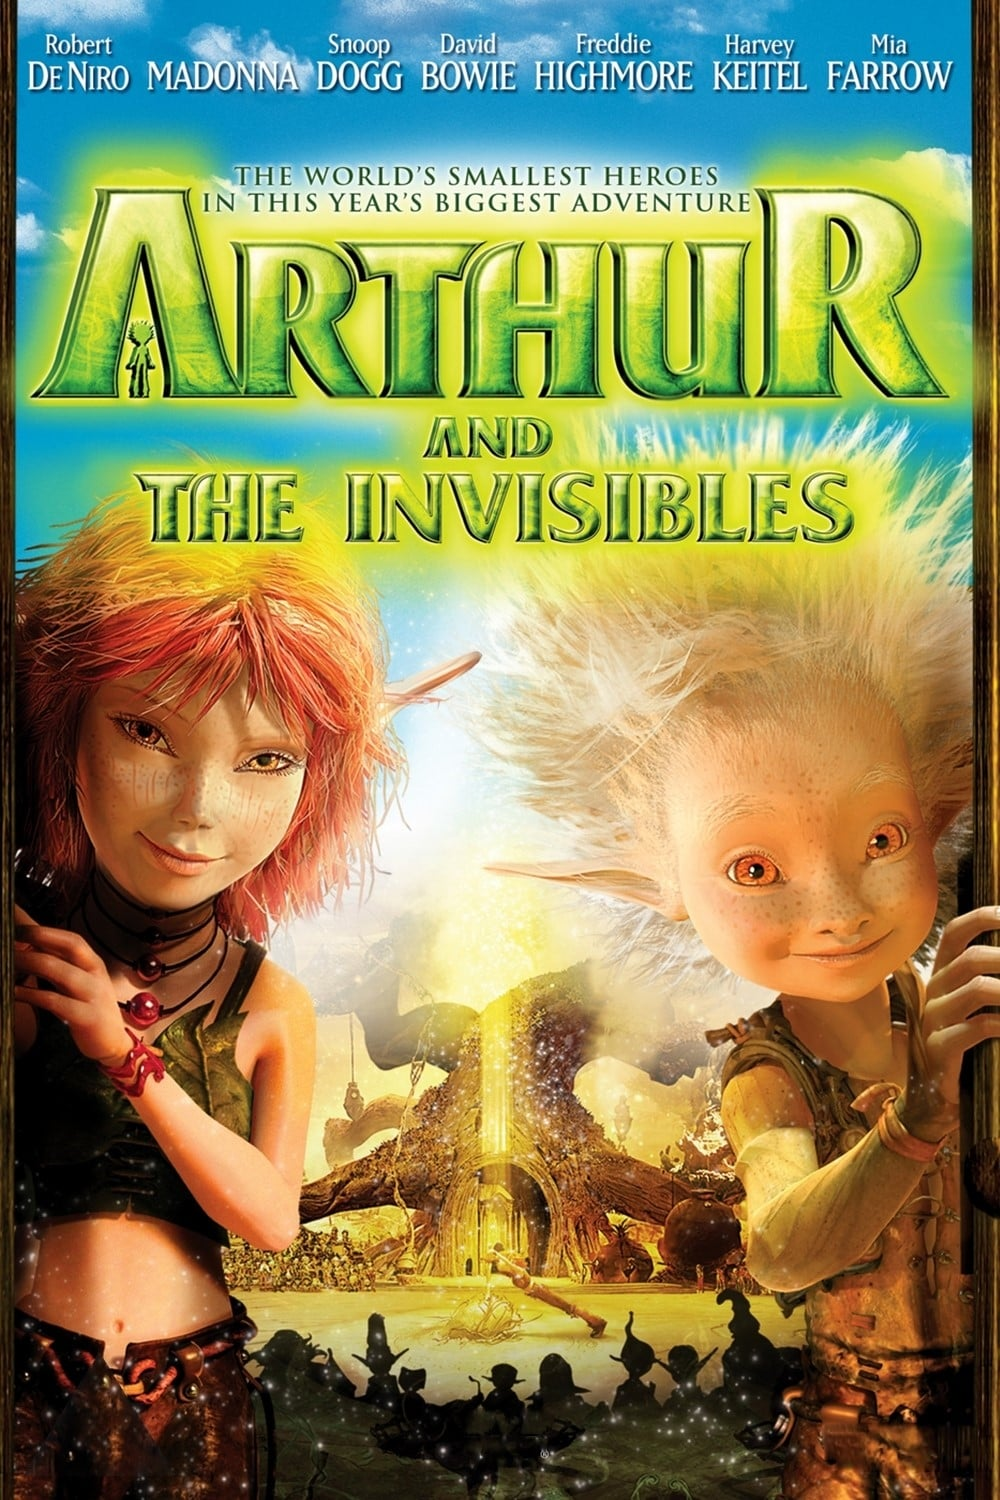 Arthur and the Invisibles (2006) Dual Audio Hindi 350MB BluRay 480p ESubsArthur and the Invisibles (2006) Dual Audio Hindi 350MB BluRay 480p ESubs